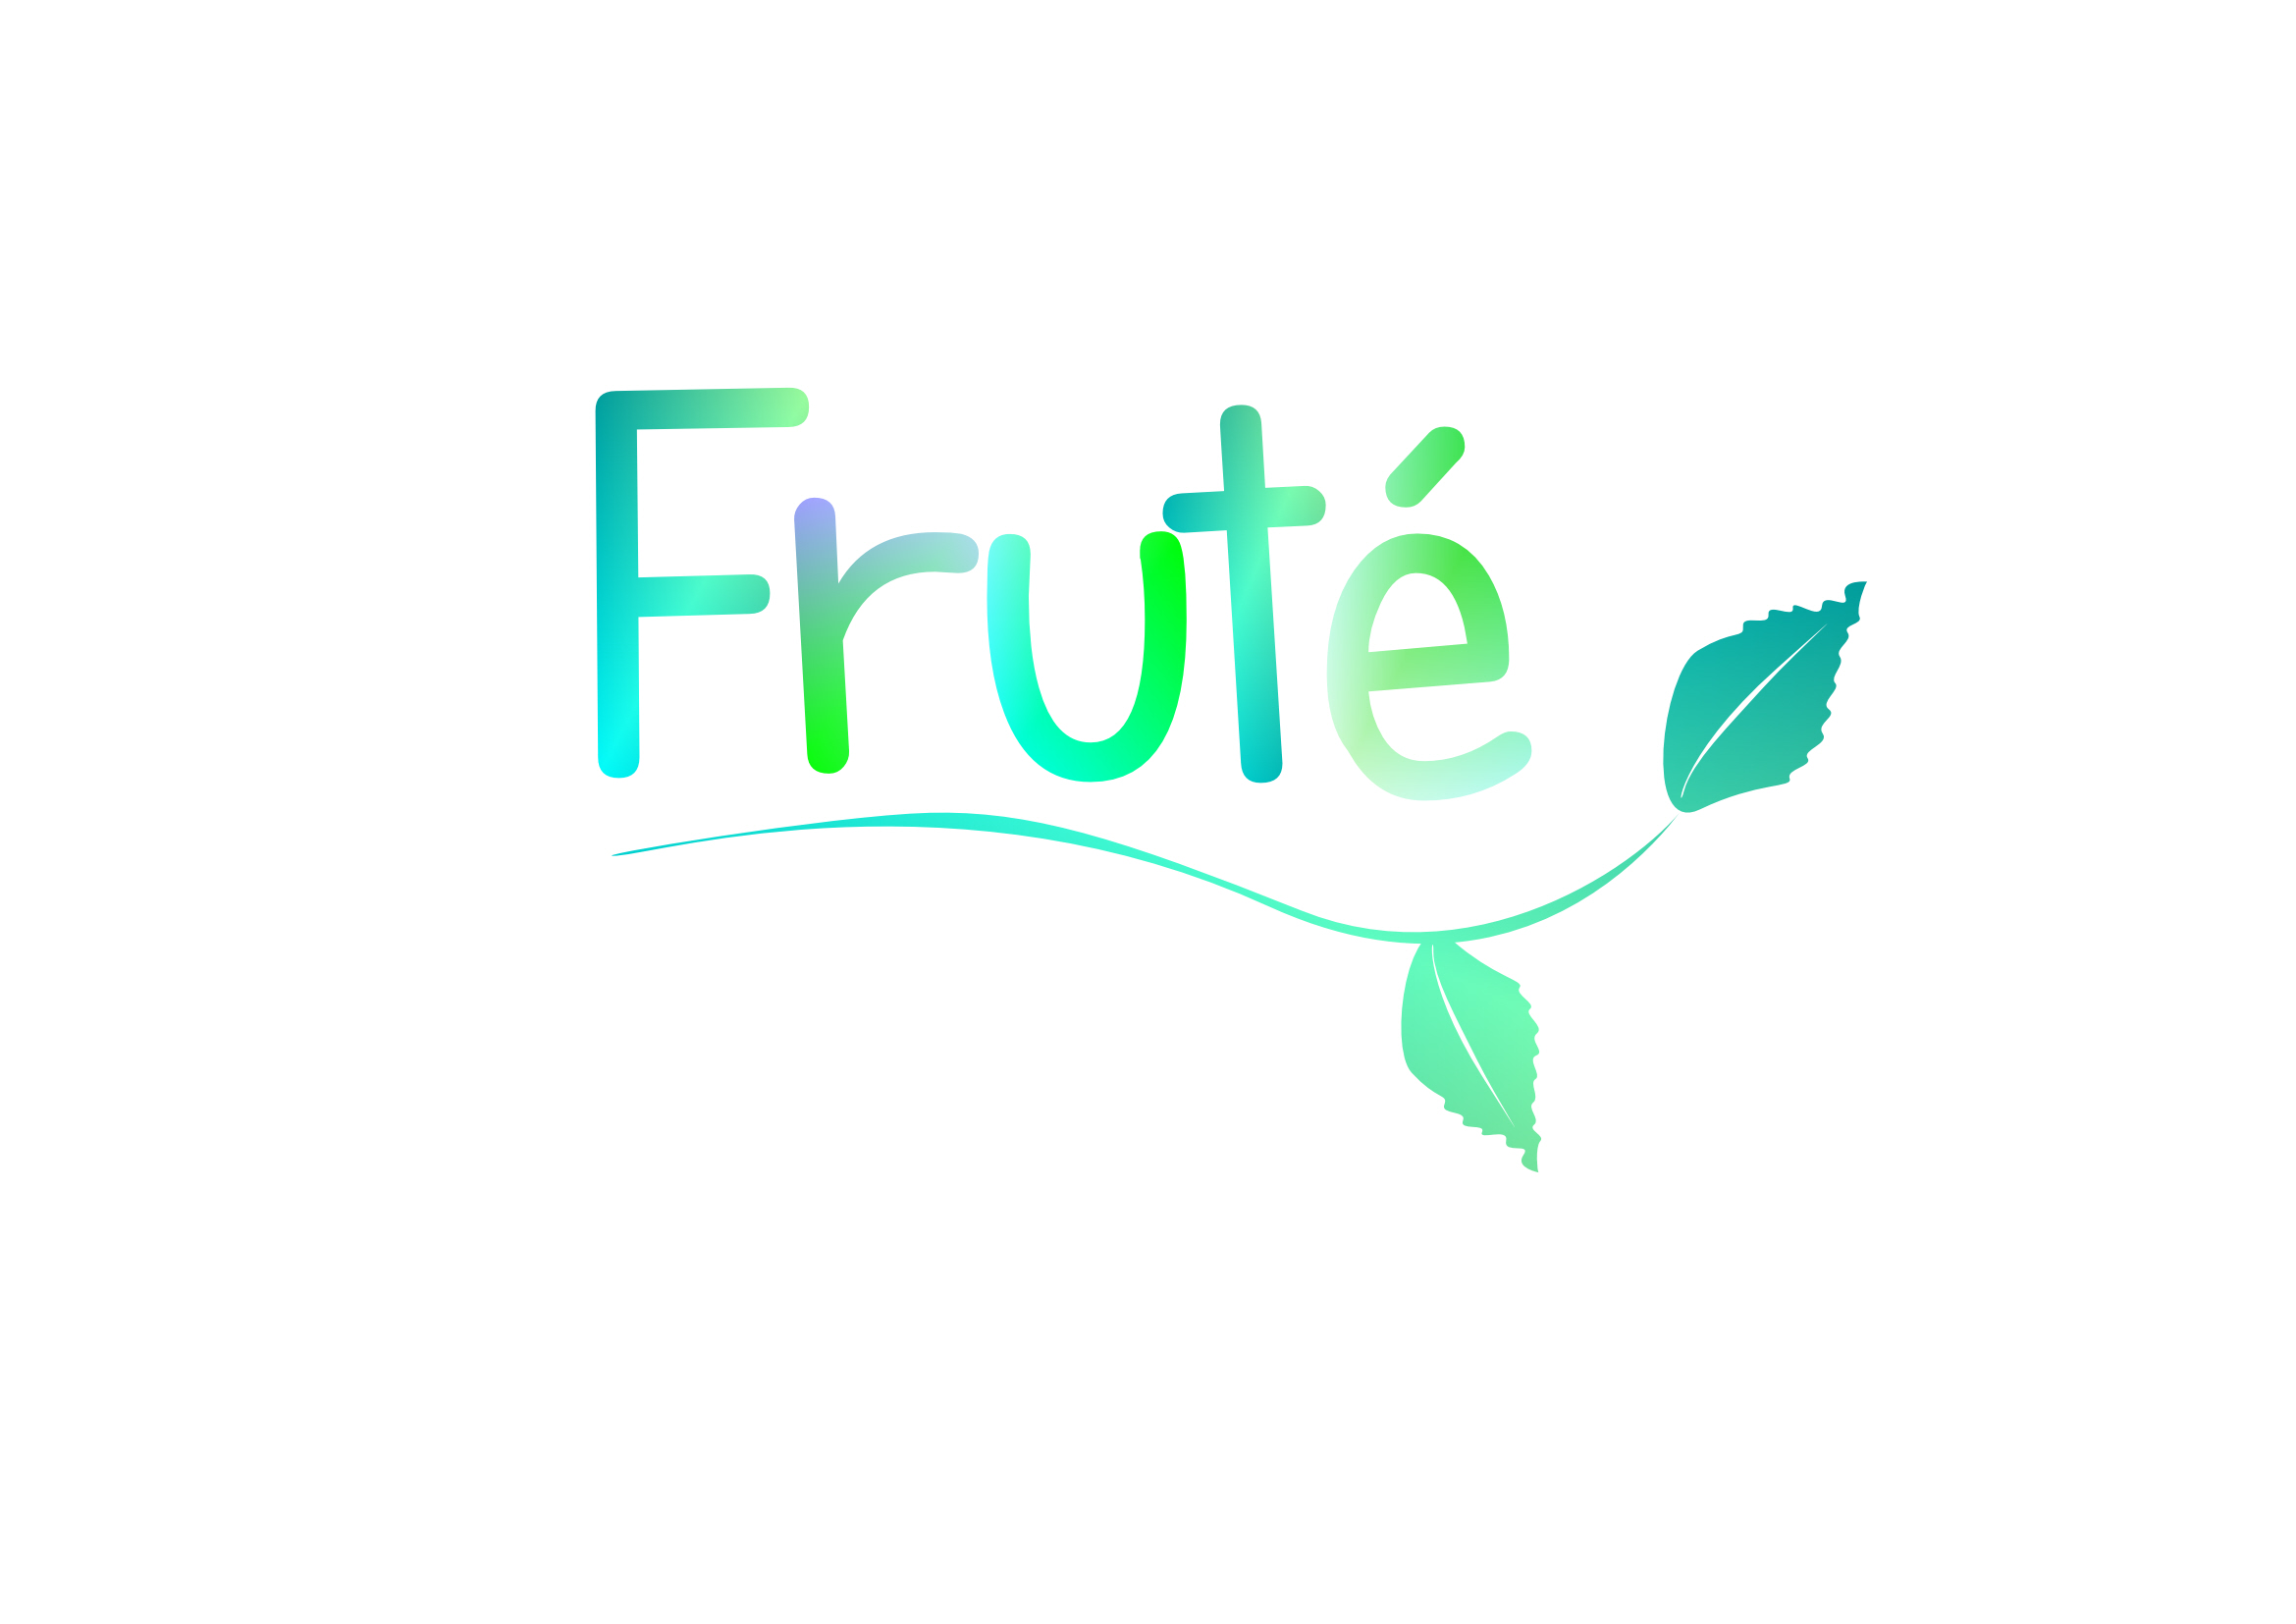 Logo Design by Heri Susanto - Entry No. 154 in the Logo Design Contest Imaginative Logo Design for Fruté.